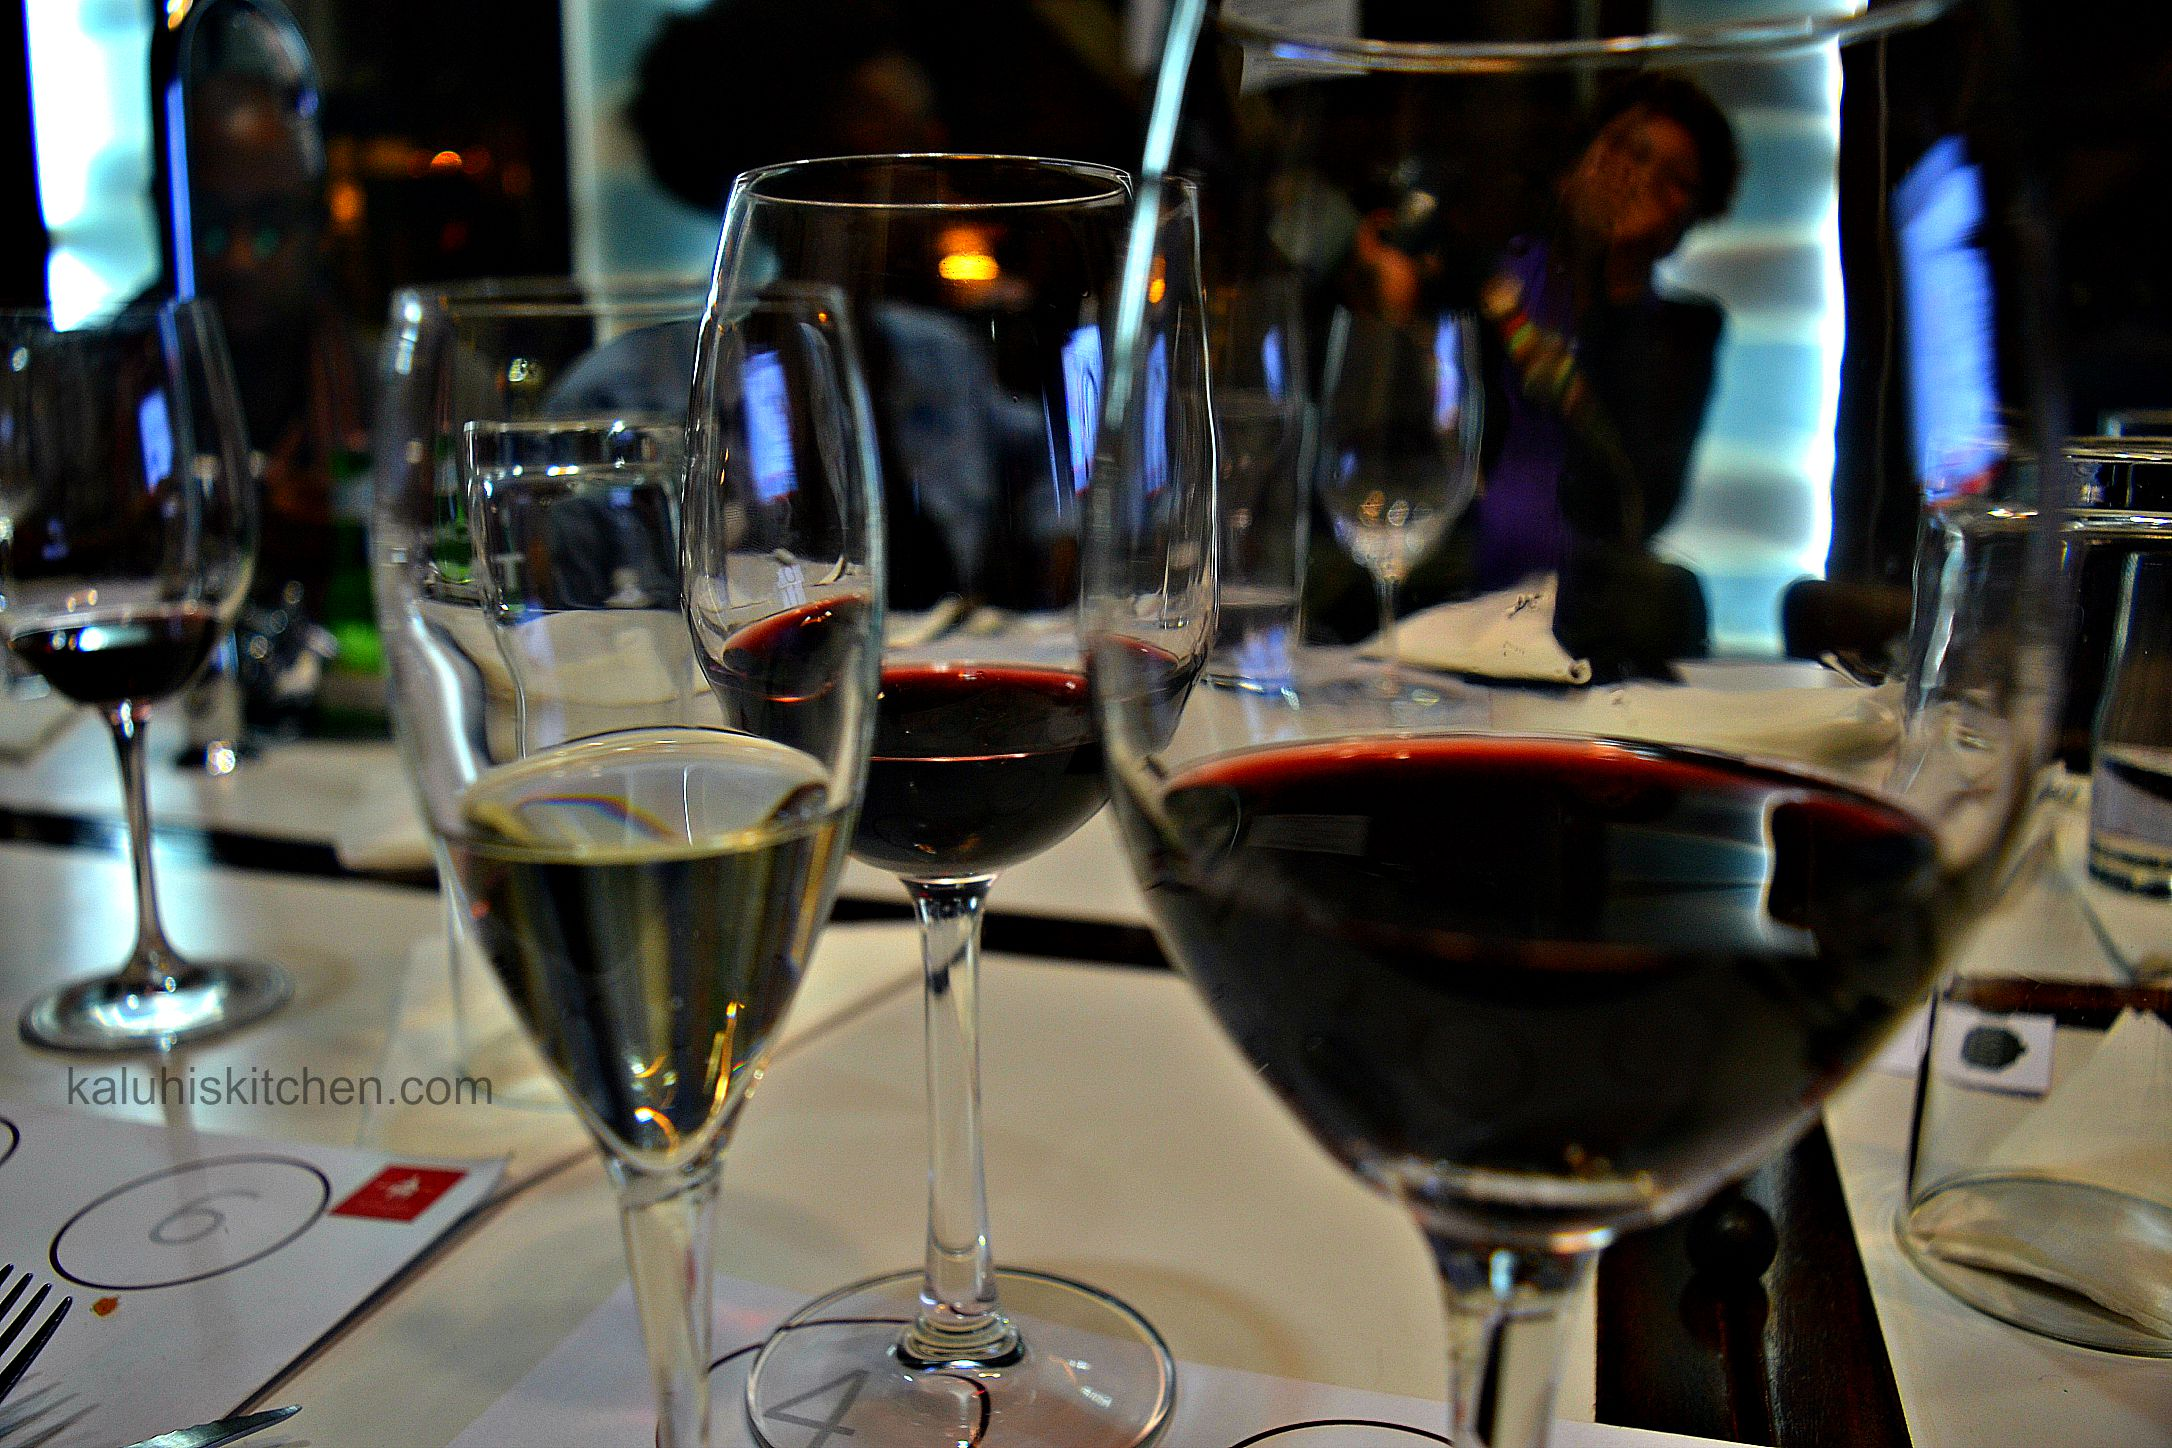 best place to get high quality wine in nairobi is at salt bar and grill at the junction_kaluhiskitchen.com_salt bar and grill